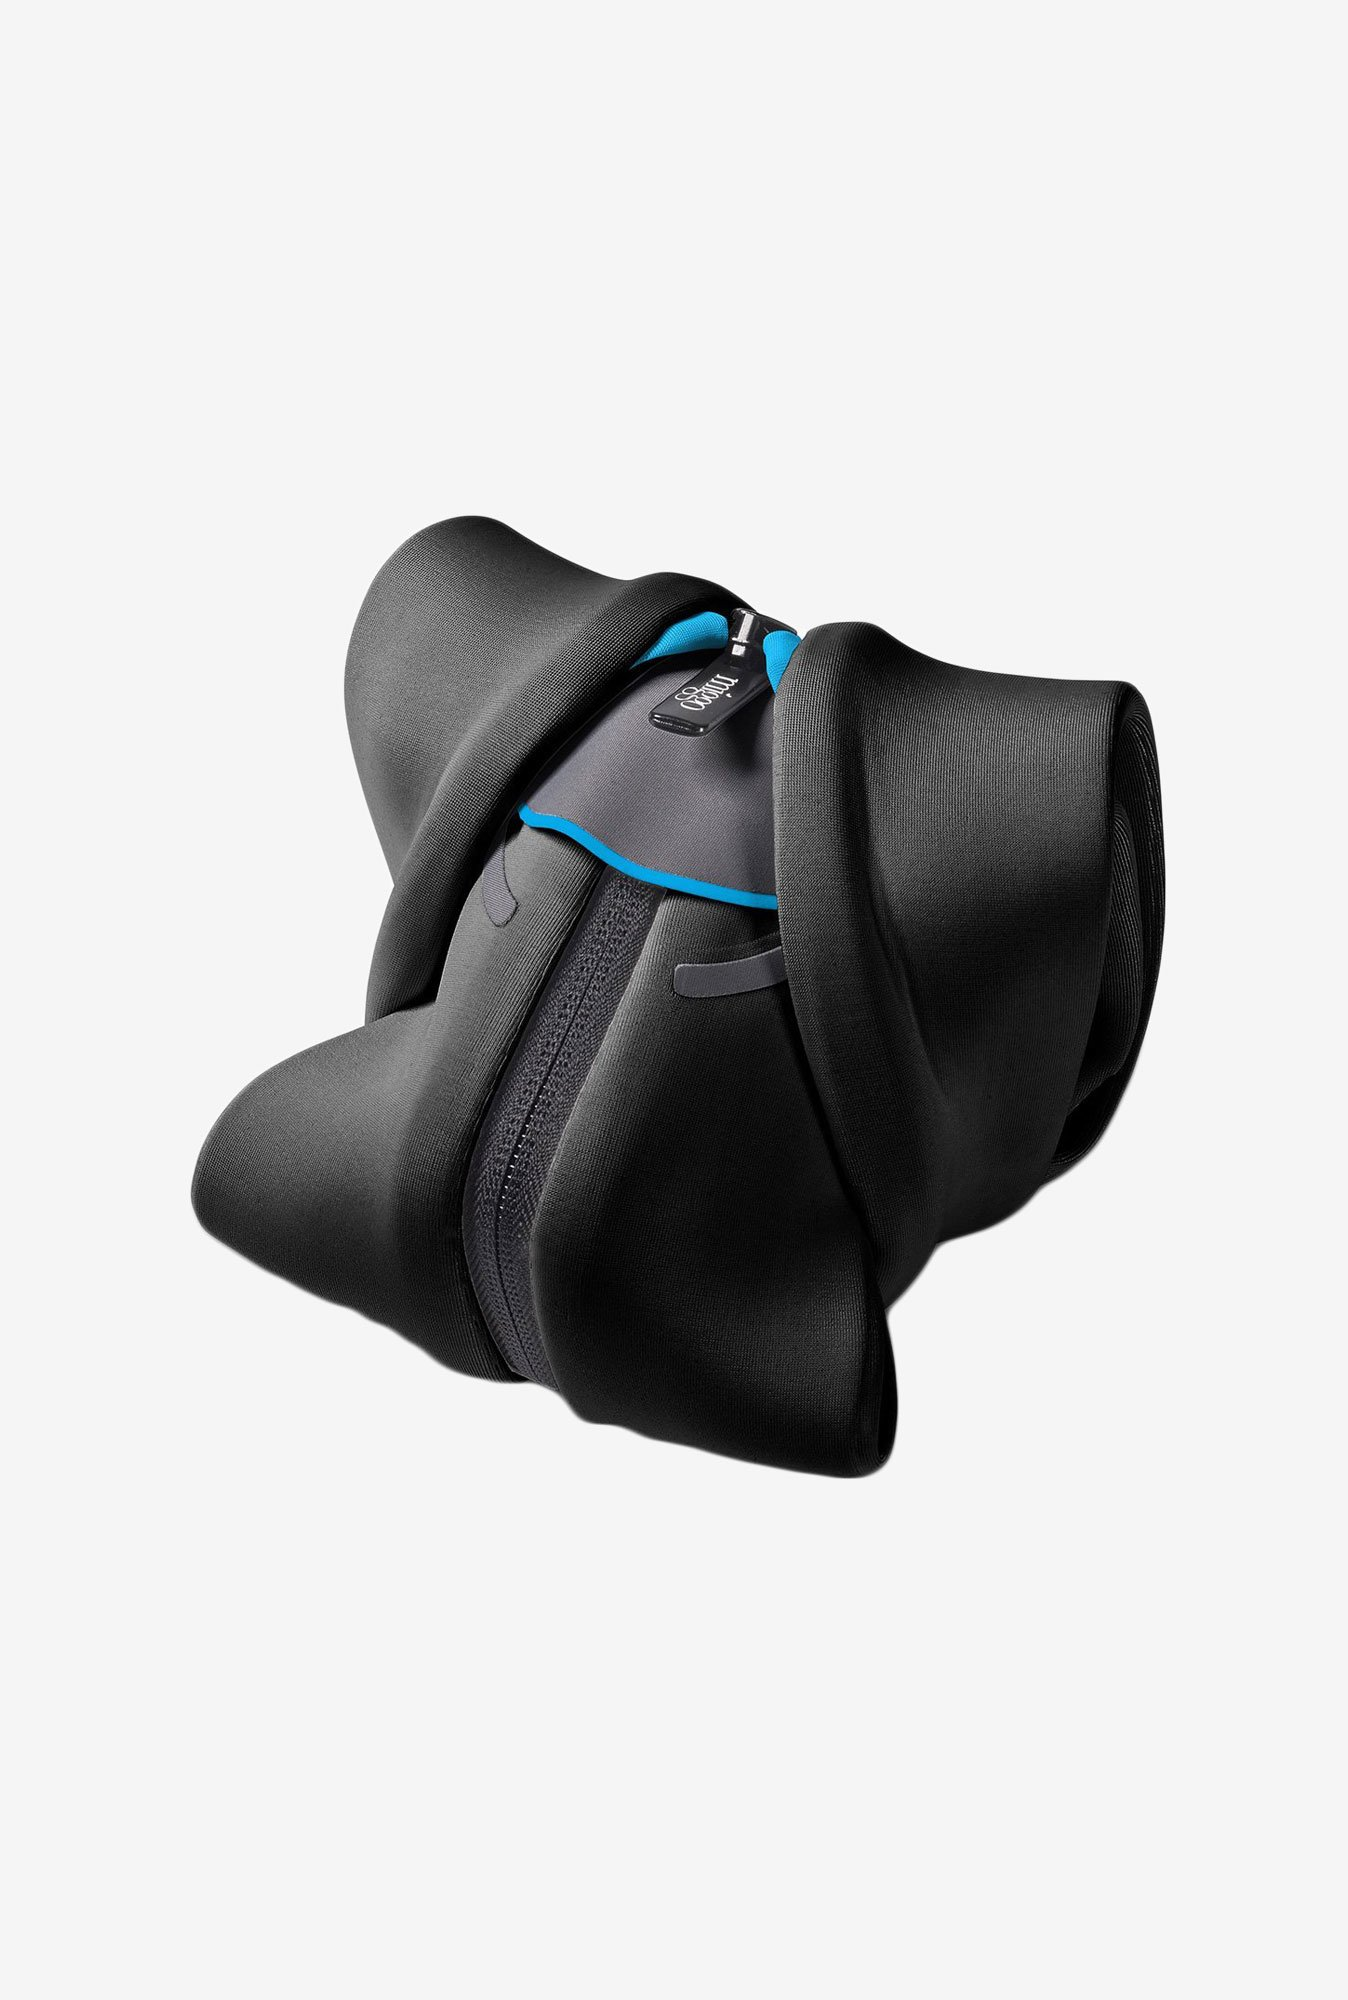 Miggo Strap and Wrap for Compact System Cameras (Black/Blue)